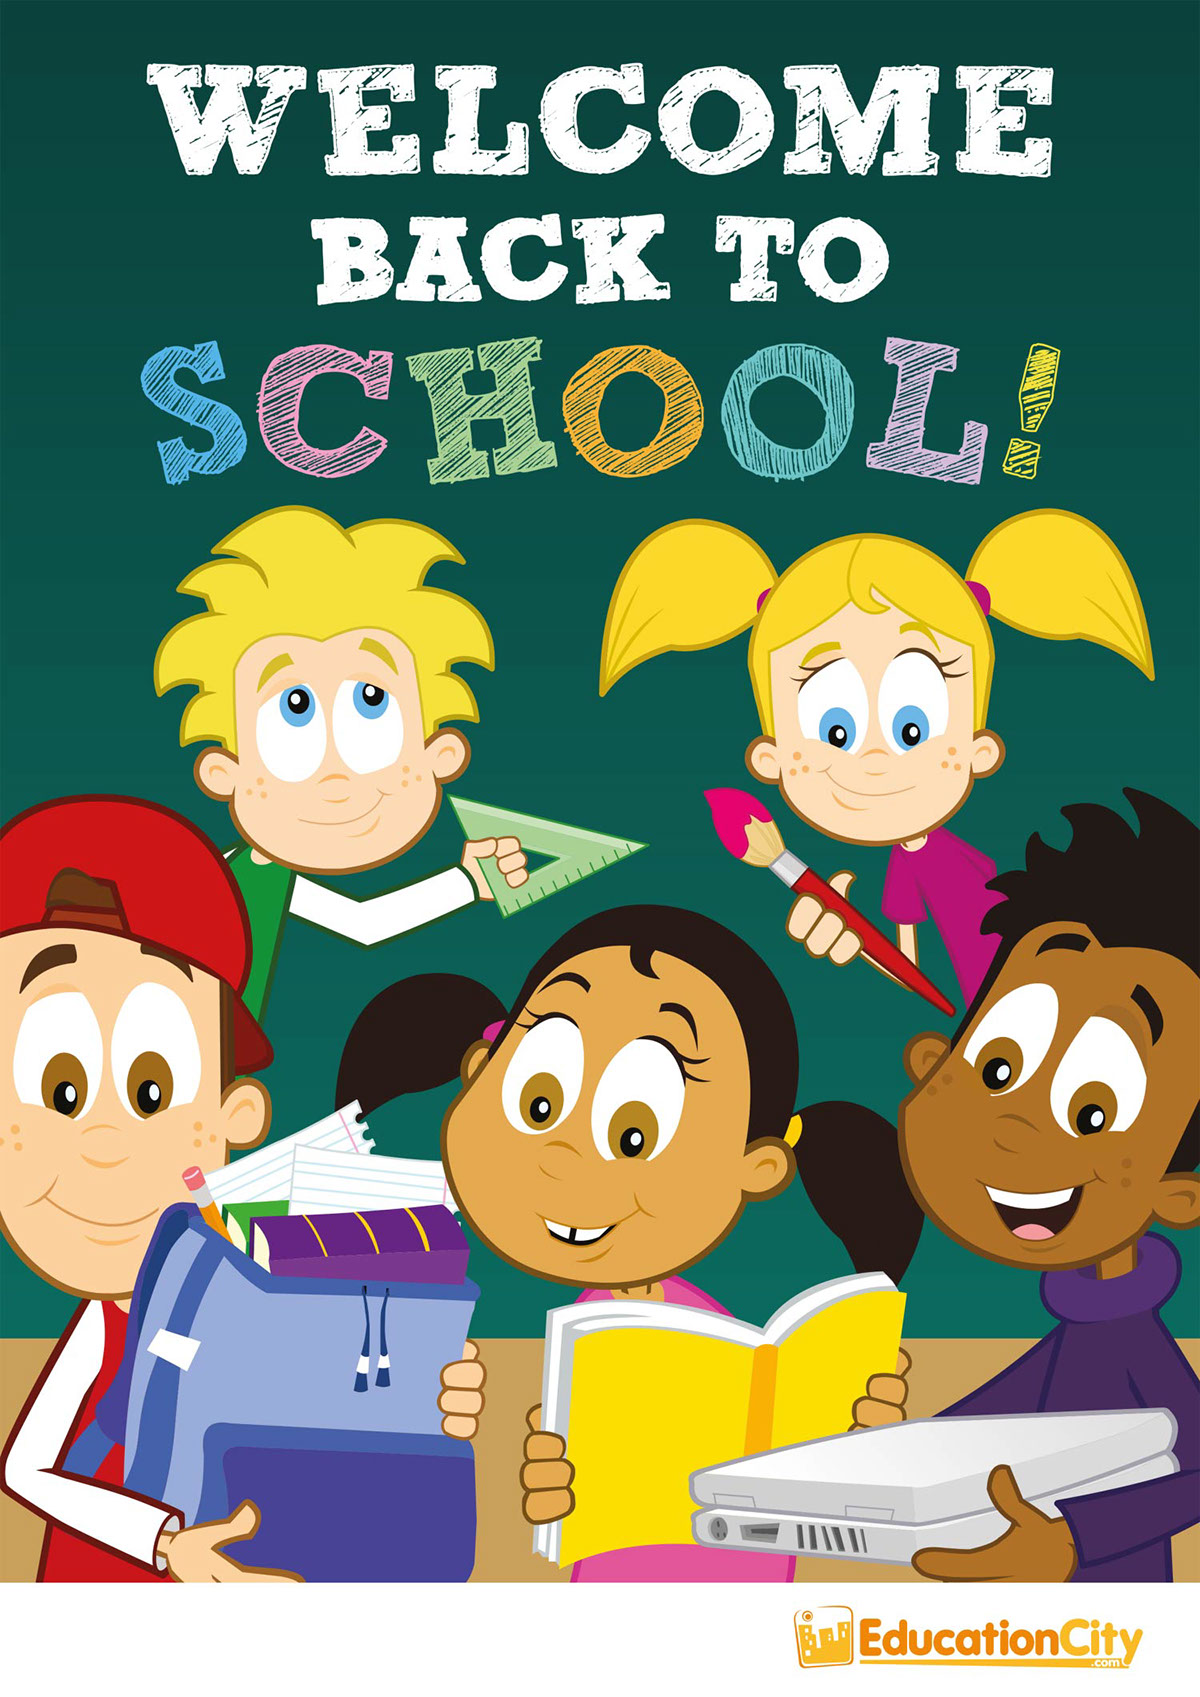 Educationcity Welcome Back To School Poster On Student Show